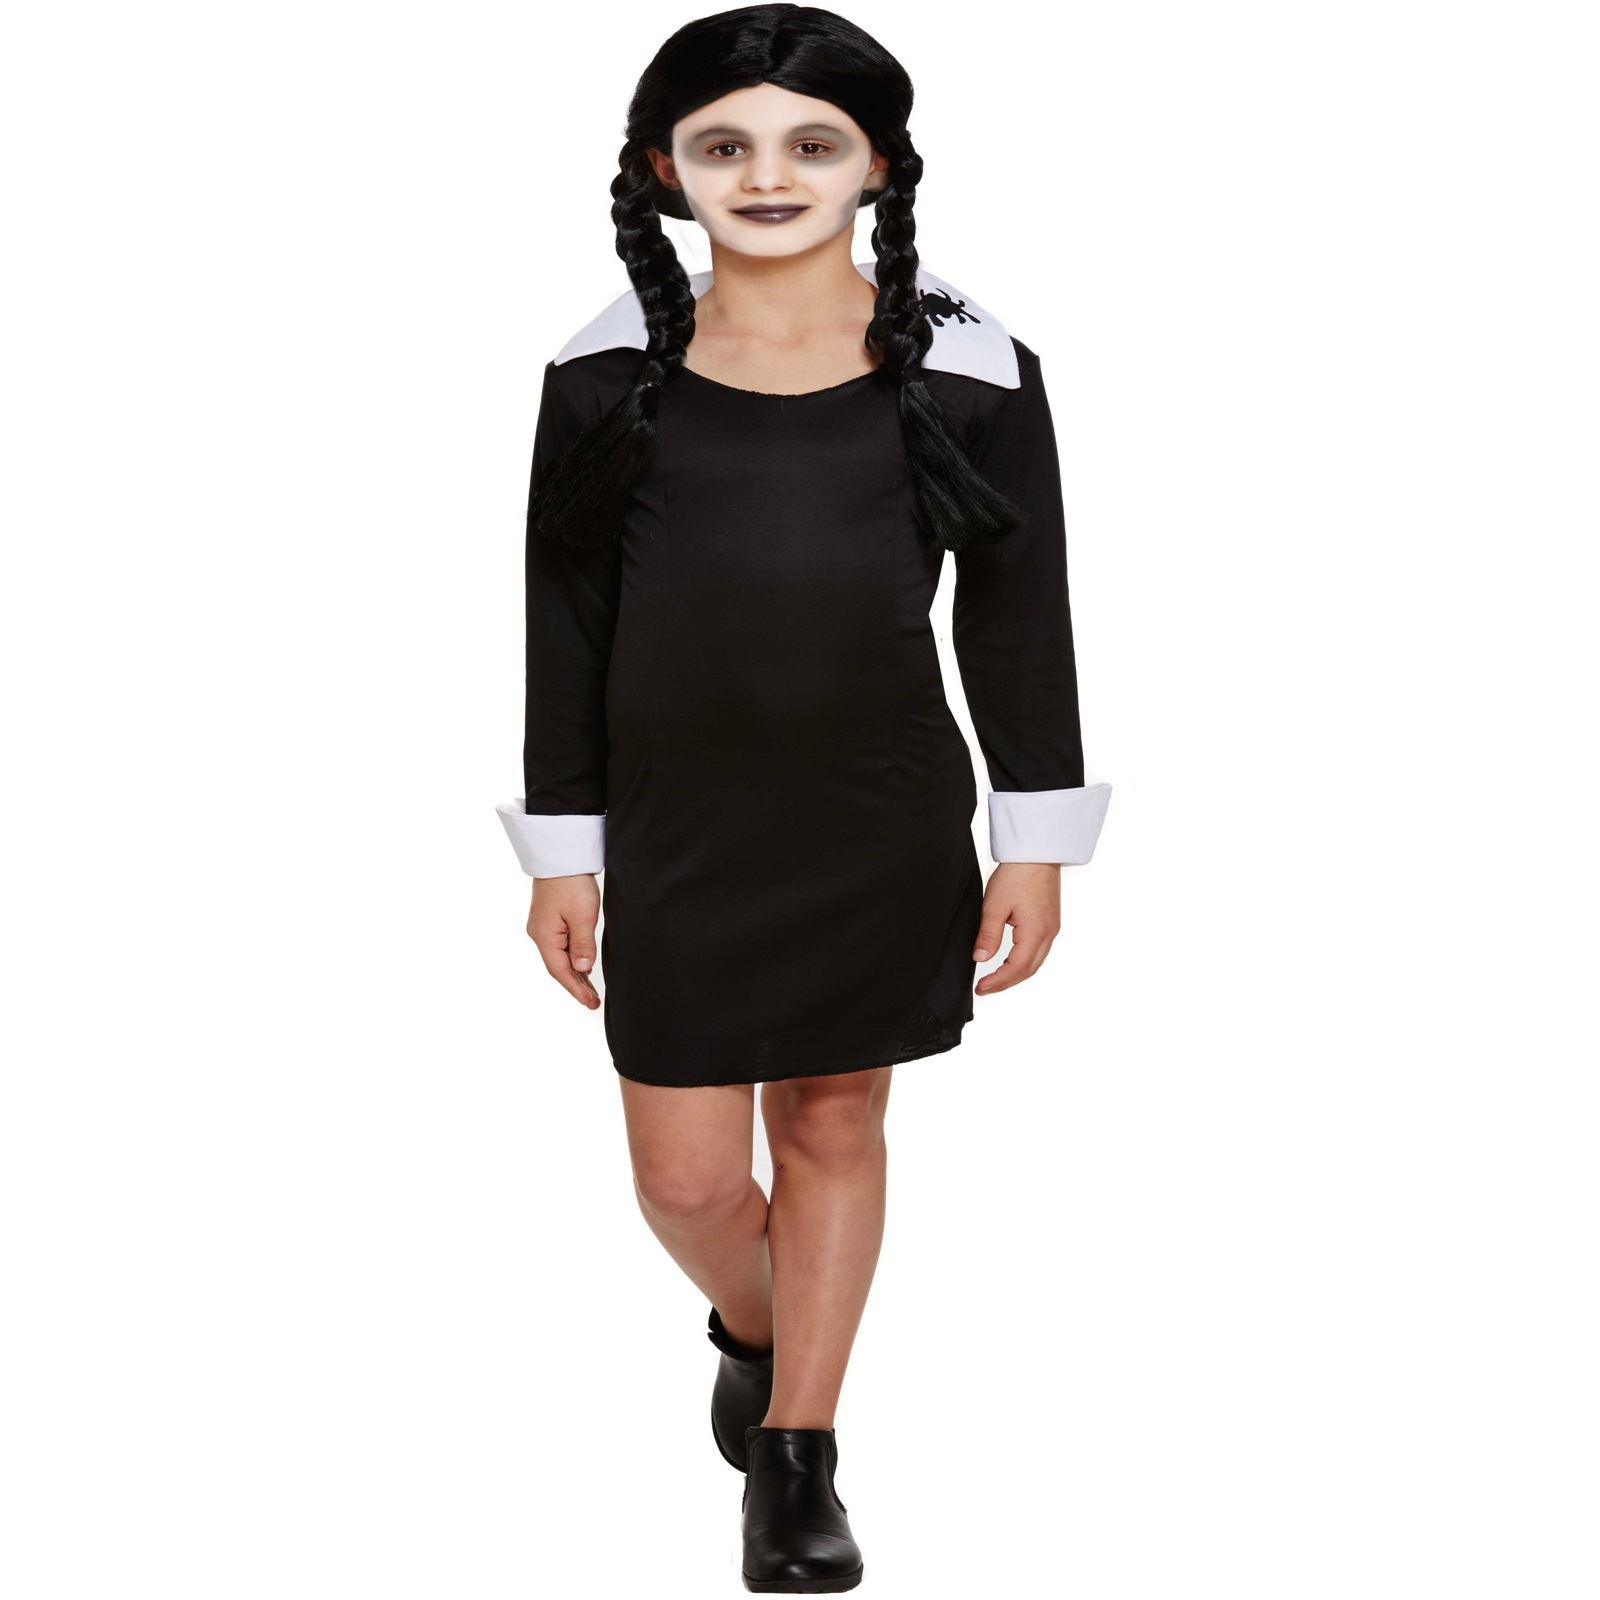 childrens fancy dress costumes ebay